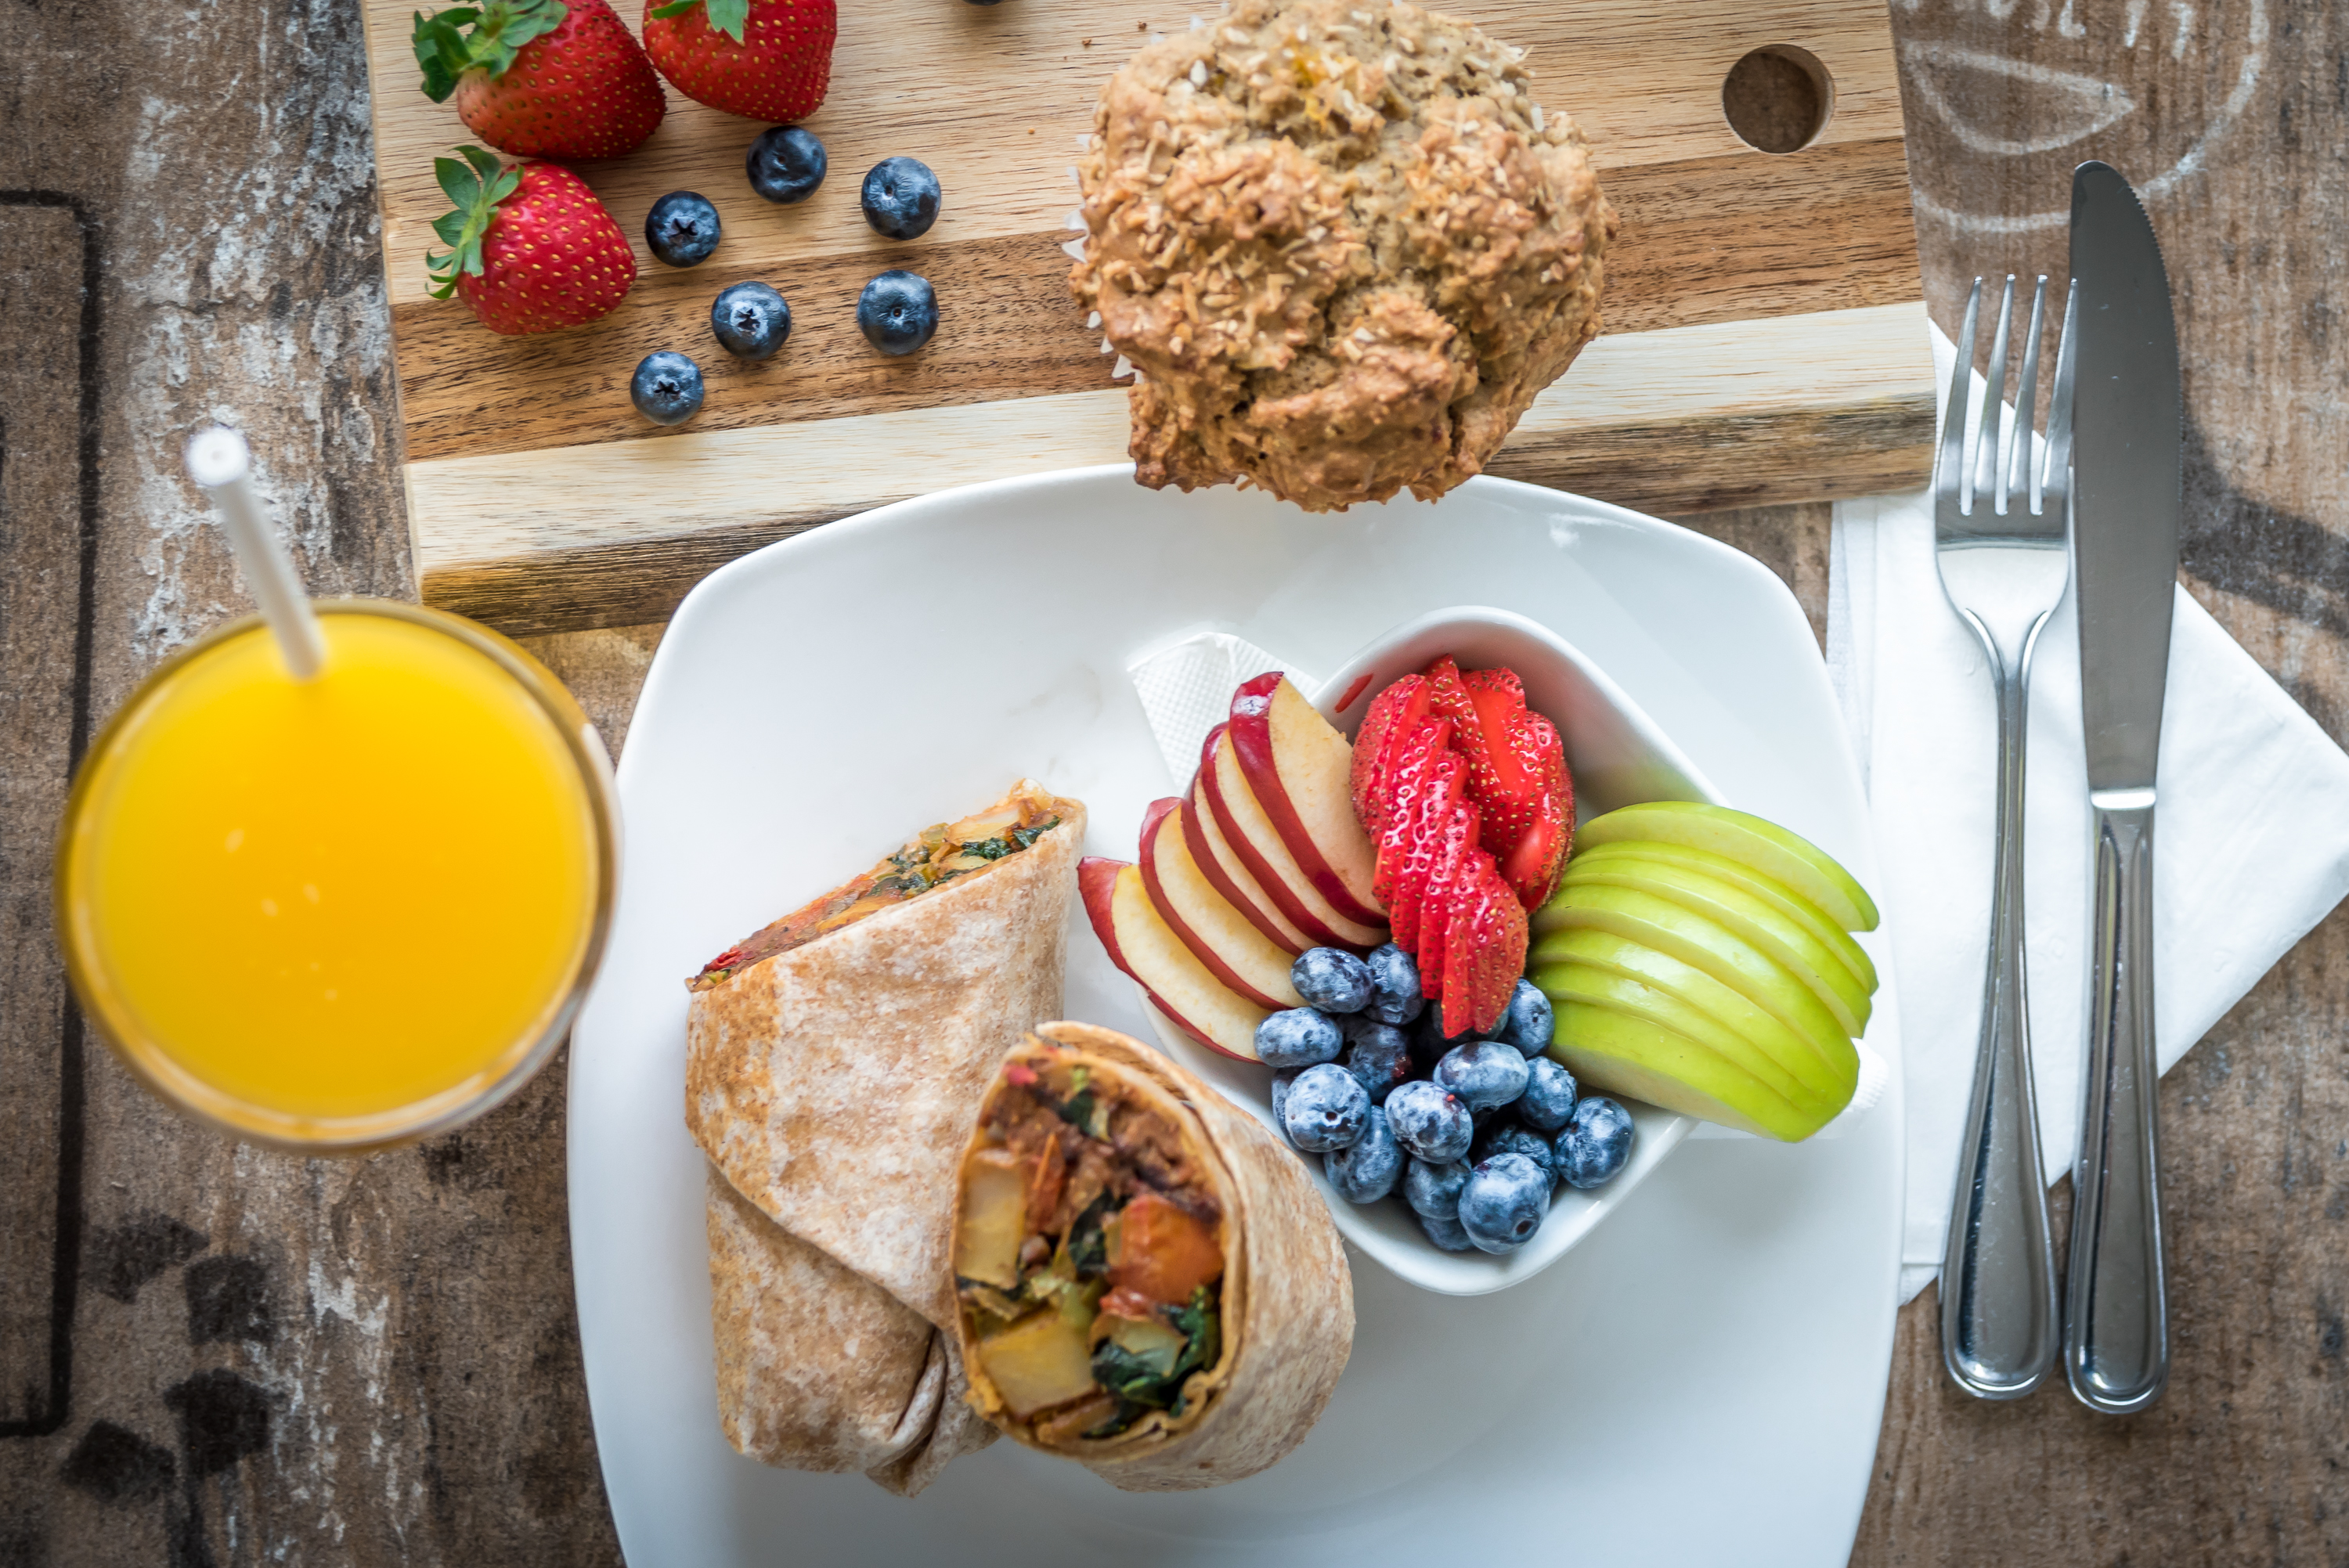 Island Naturals Breakfast Wrap and Fruit